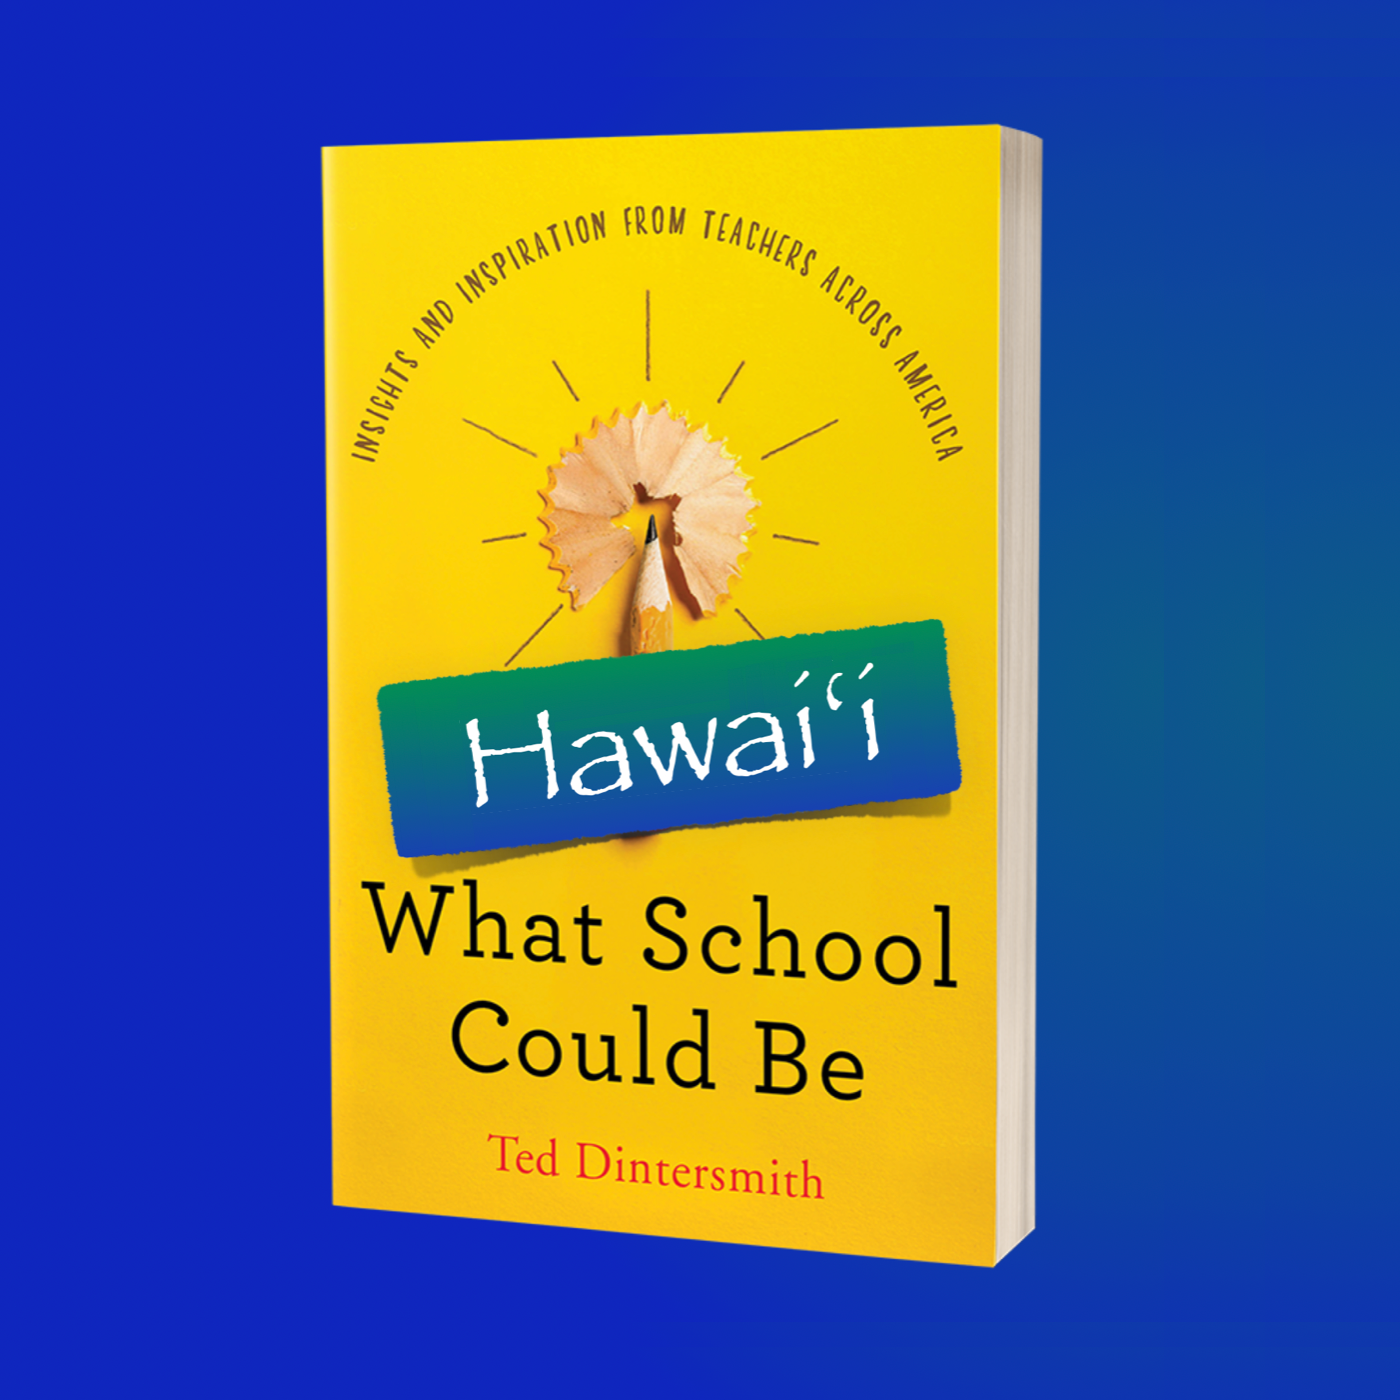 What School Could Be in Hawaiʻi